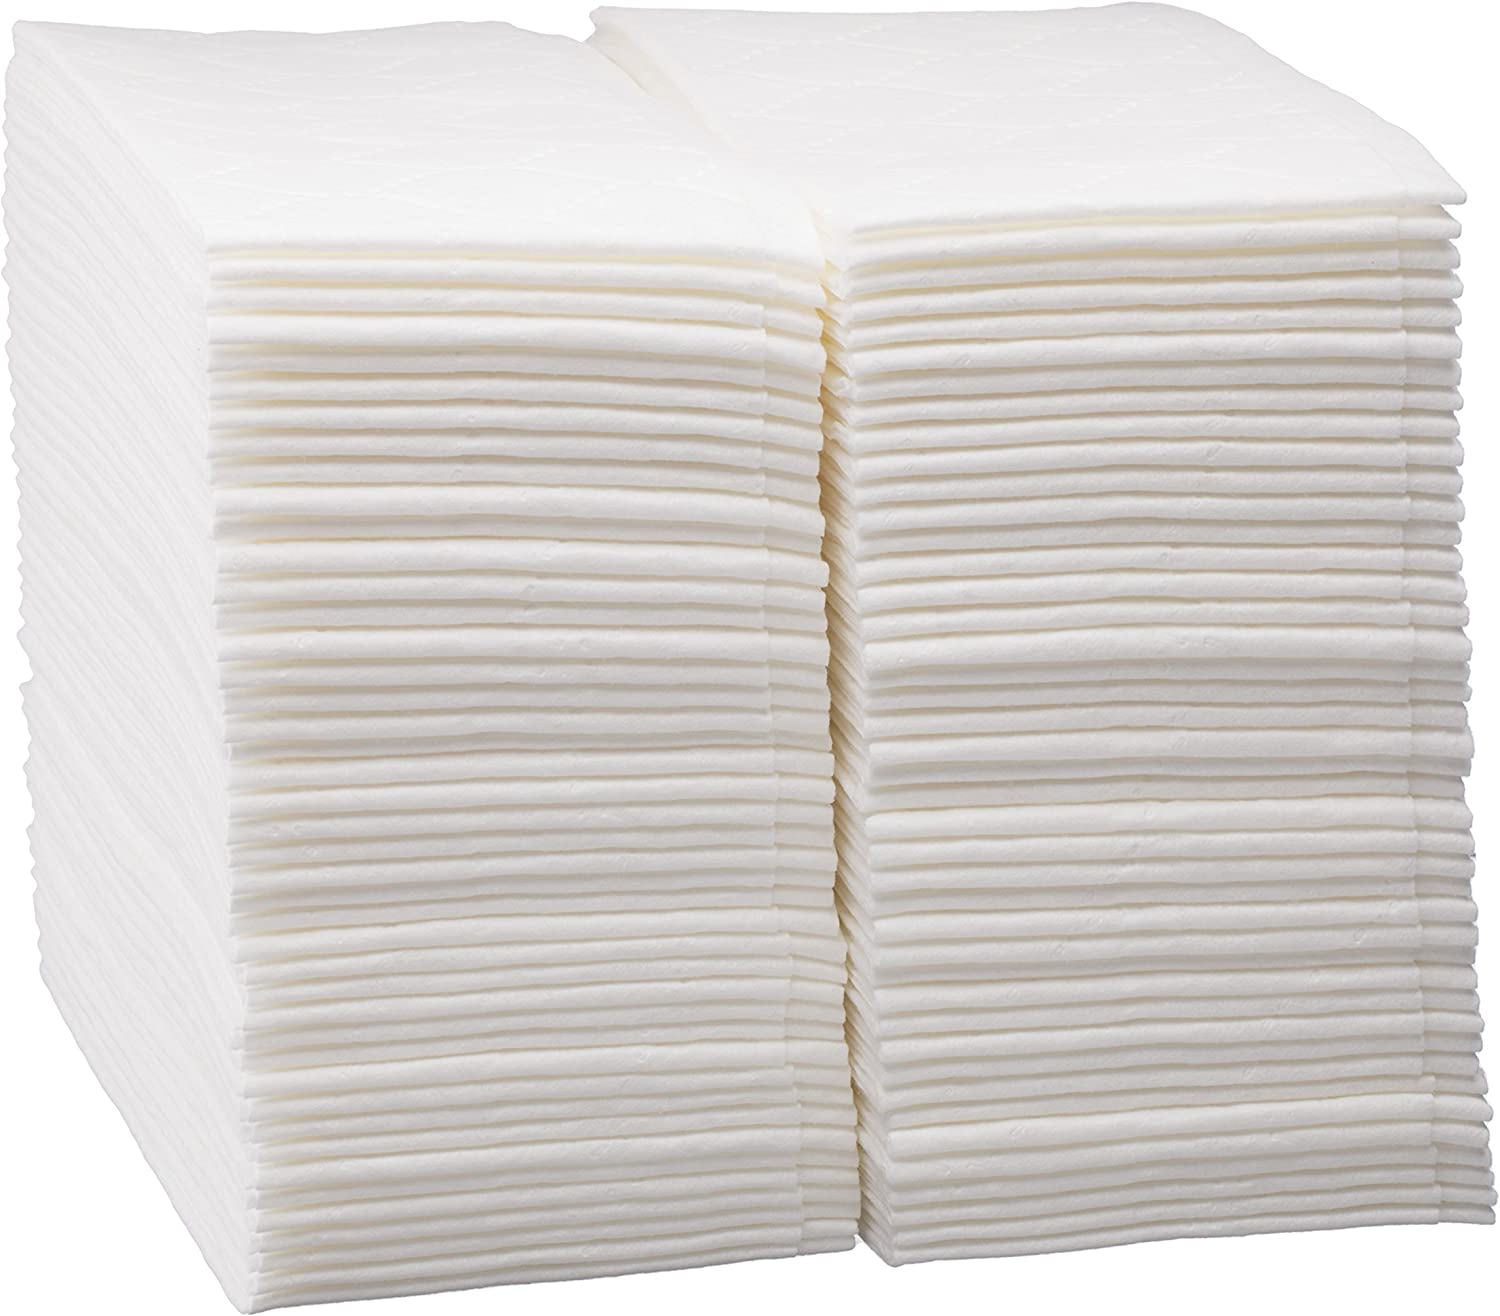 1000 Count Luxury Linen Feel Disposable Guest Hand Towels in Bulk, Soft & Absorbent Cloth Like Paper Napkin for Bathroom, Kitchen, Weddings, Parties, Dinners or Events, White by eDayDeal